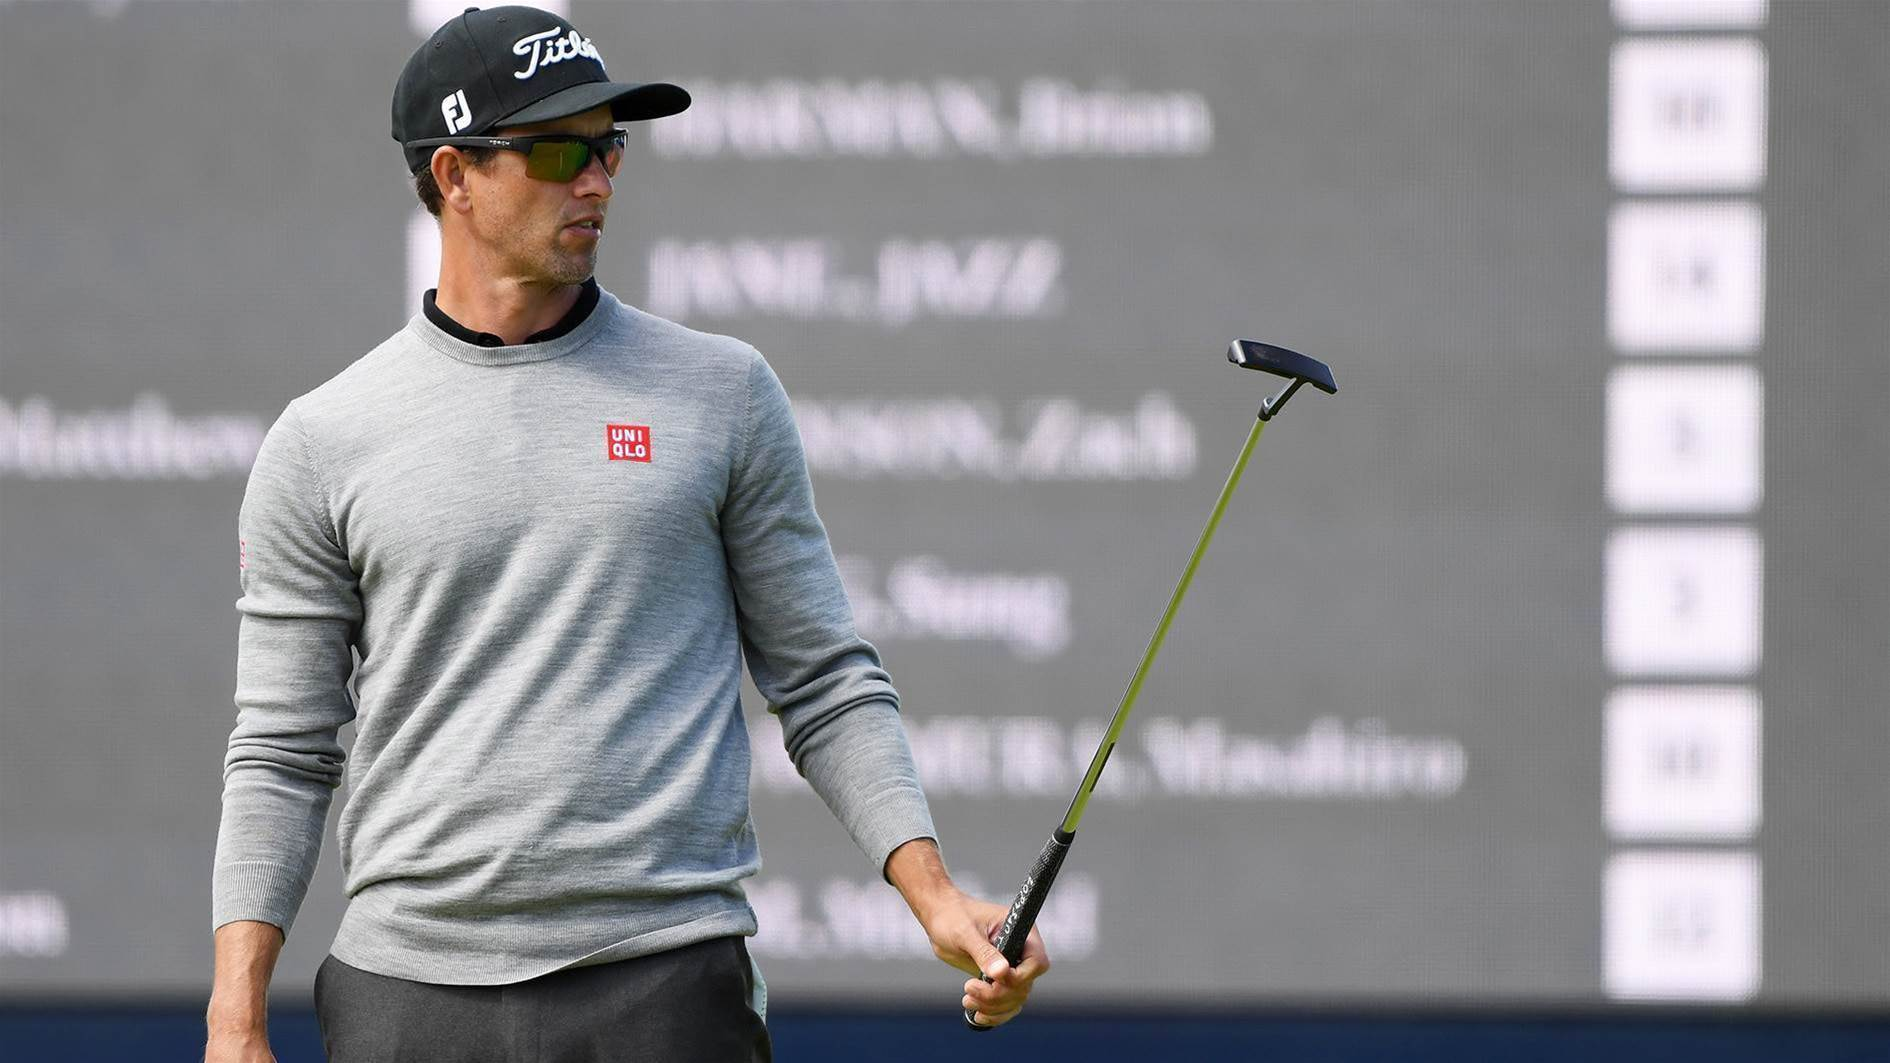 Scott abandons long putter in search of Open glory